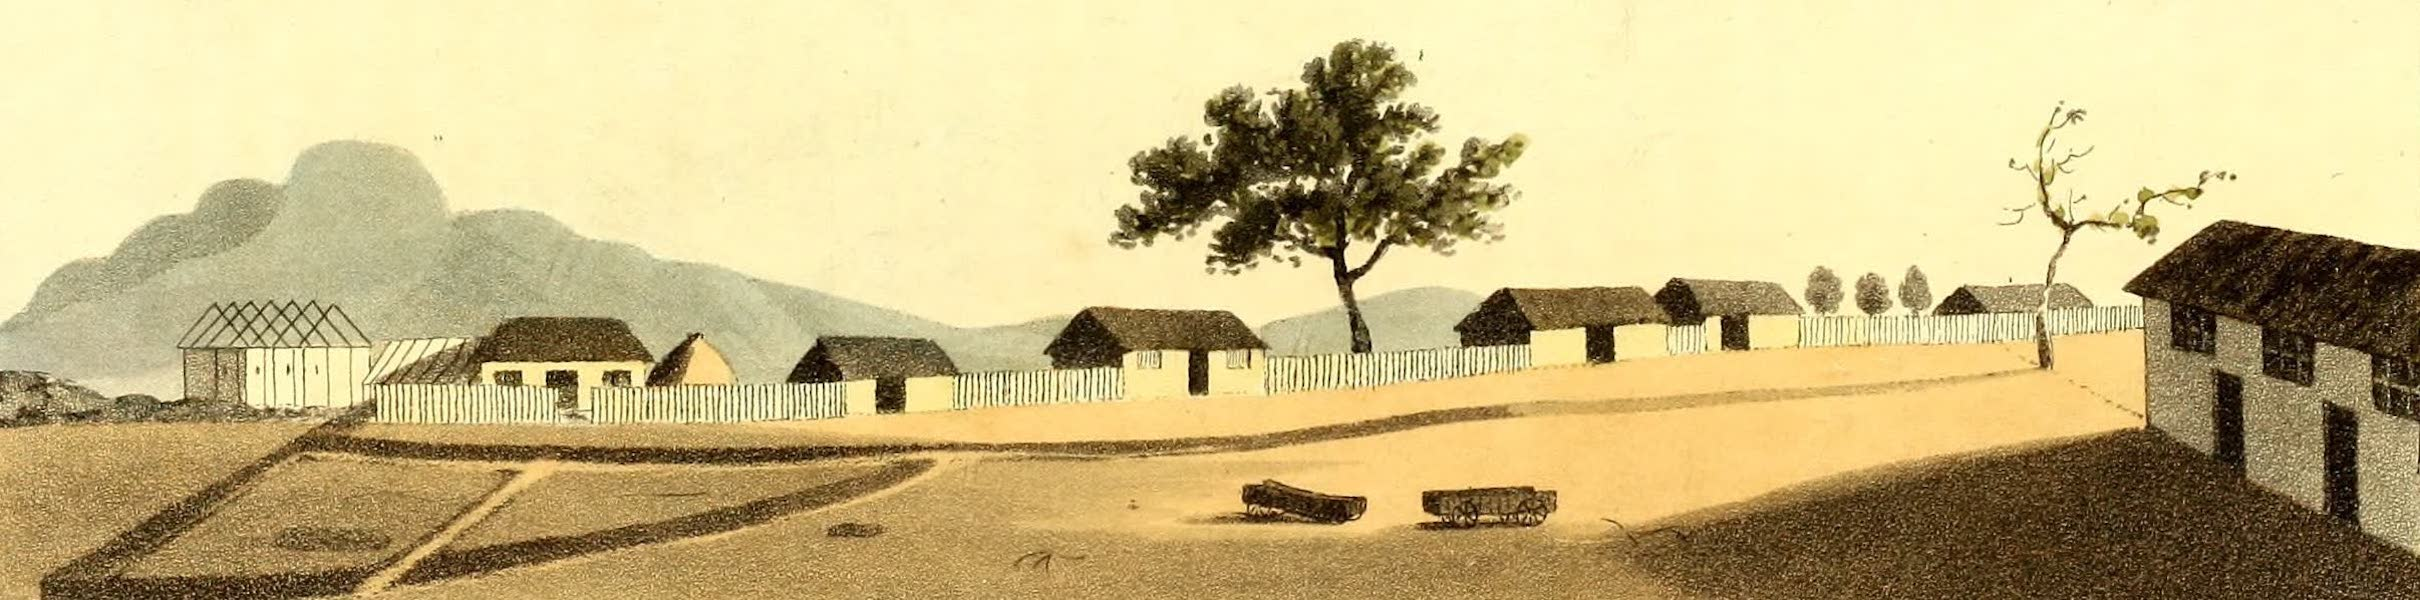 Travels in South Africa Vol. 2 - Burden's Place, New Lattakoo, containing Mission Houses and Church (1822)